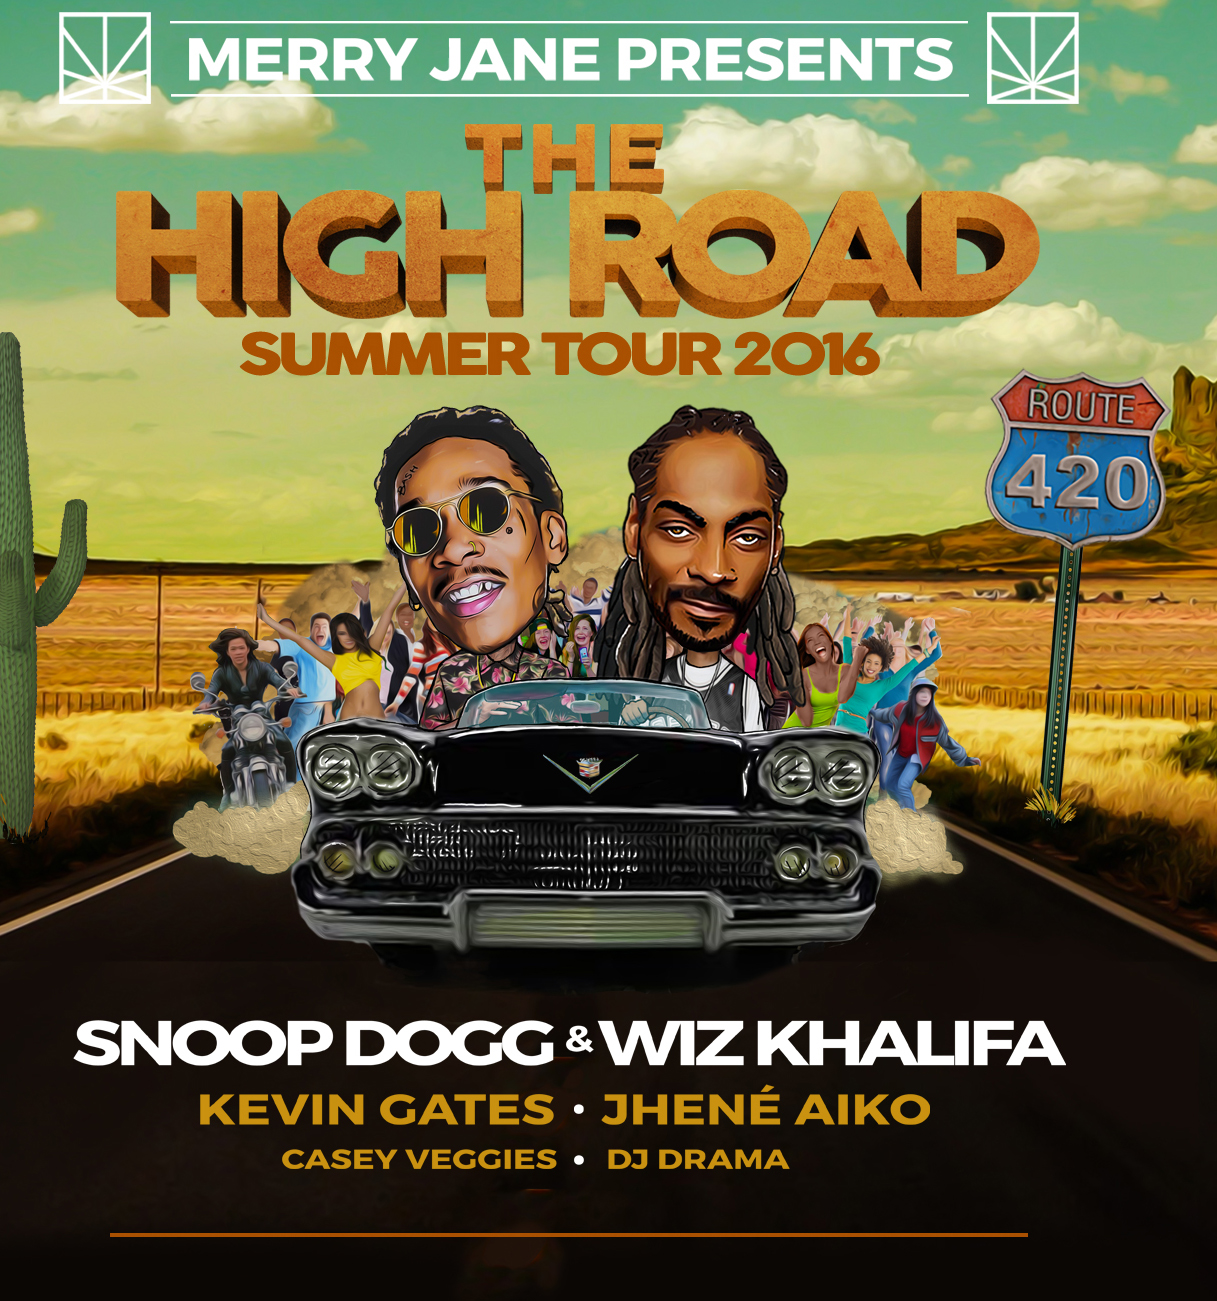 SNOOP DOGG FEAT. WIZ KHALIFA : KUSH UPS